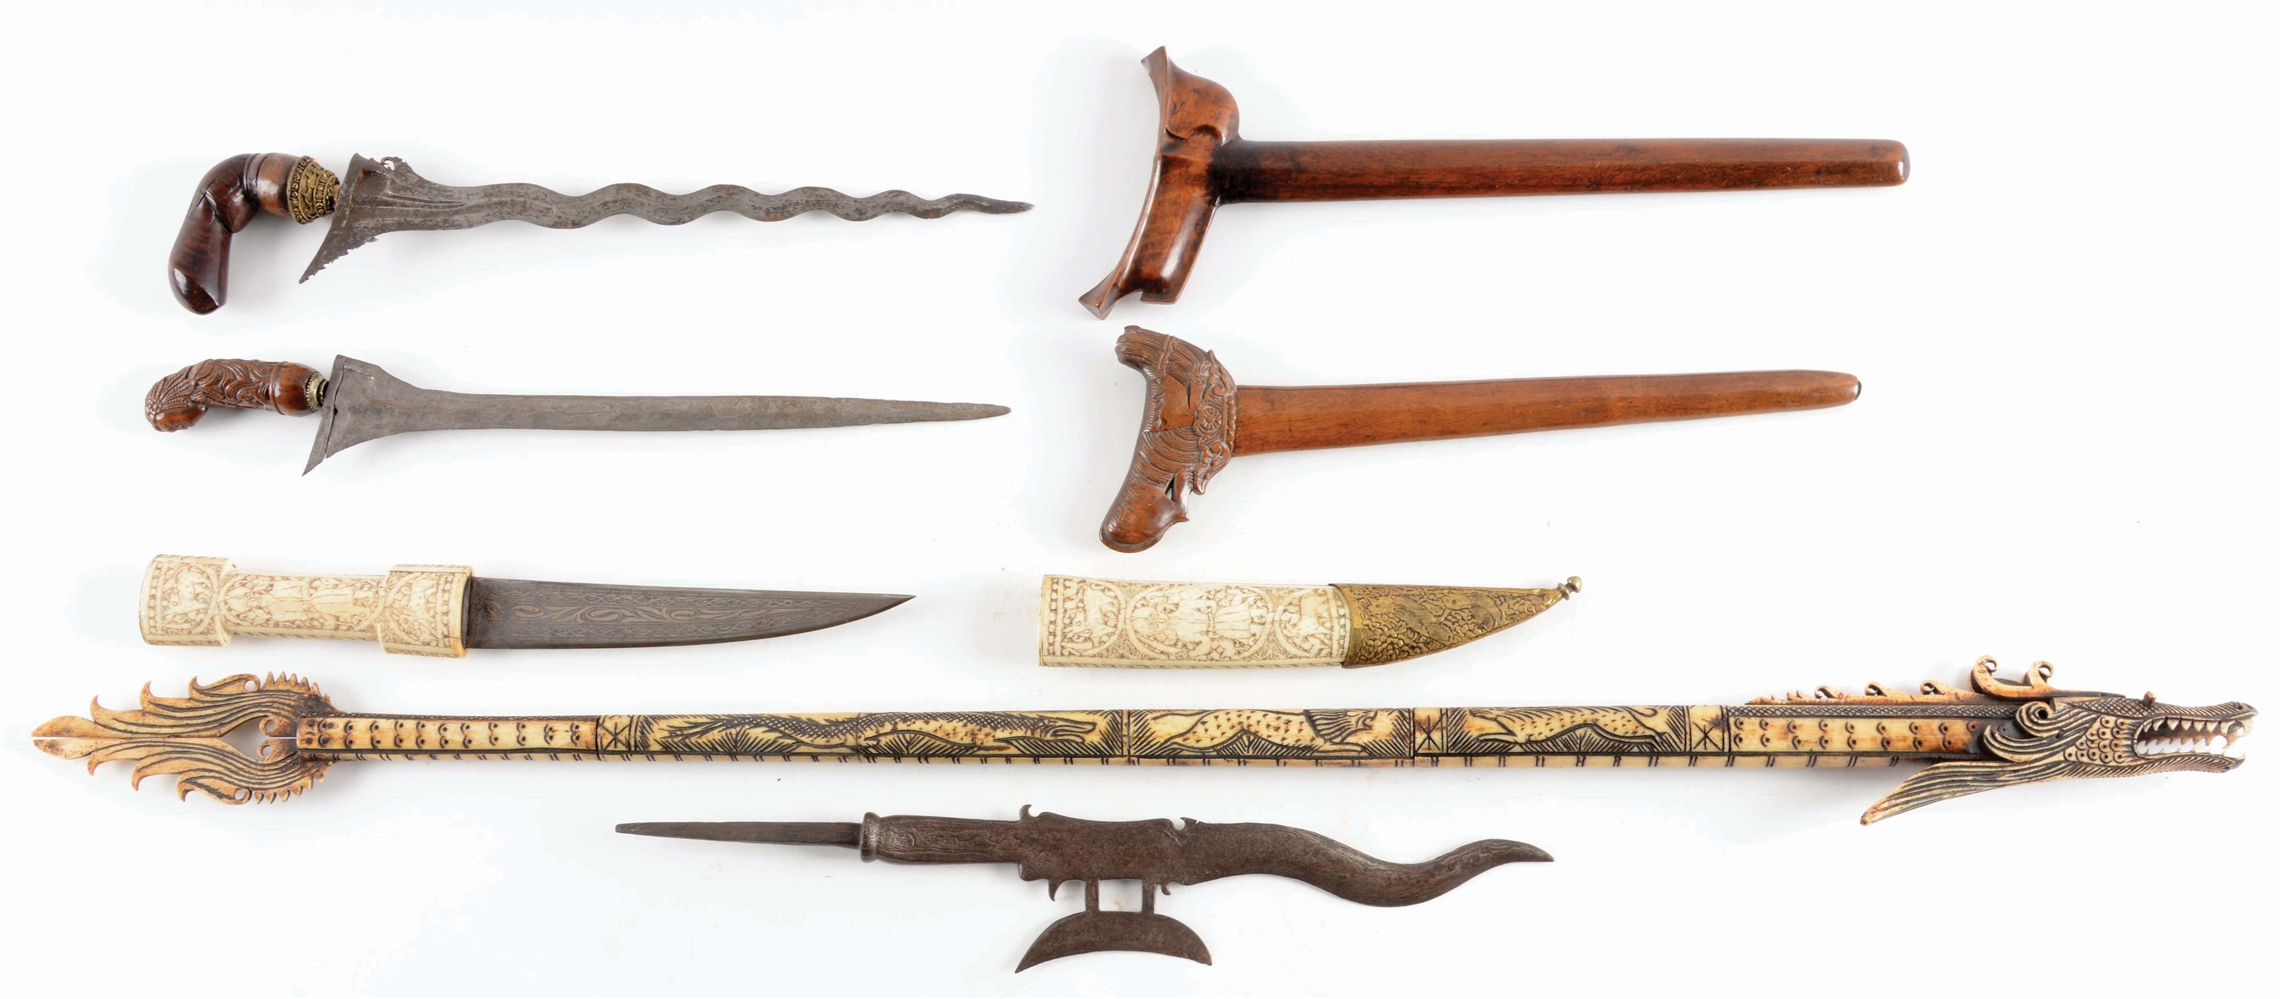 Lot of 5: An Interesting Lot of Five Ethnic Weapons, Including Two Indonesian Krisses, A Bone Mounted Ottoman Kanhanjar, a Dragon Blowgun, and an Indonesian Halberd.